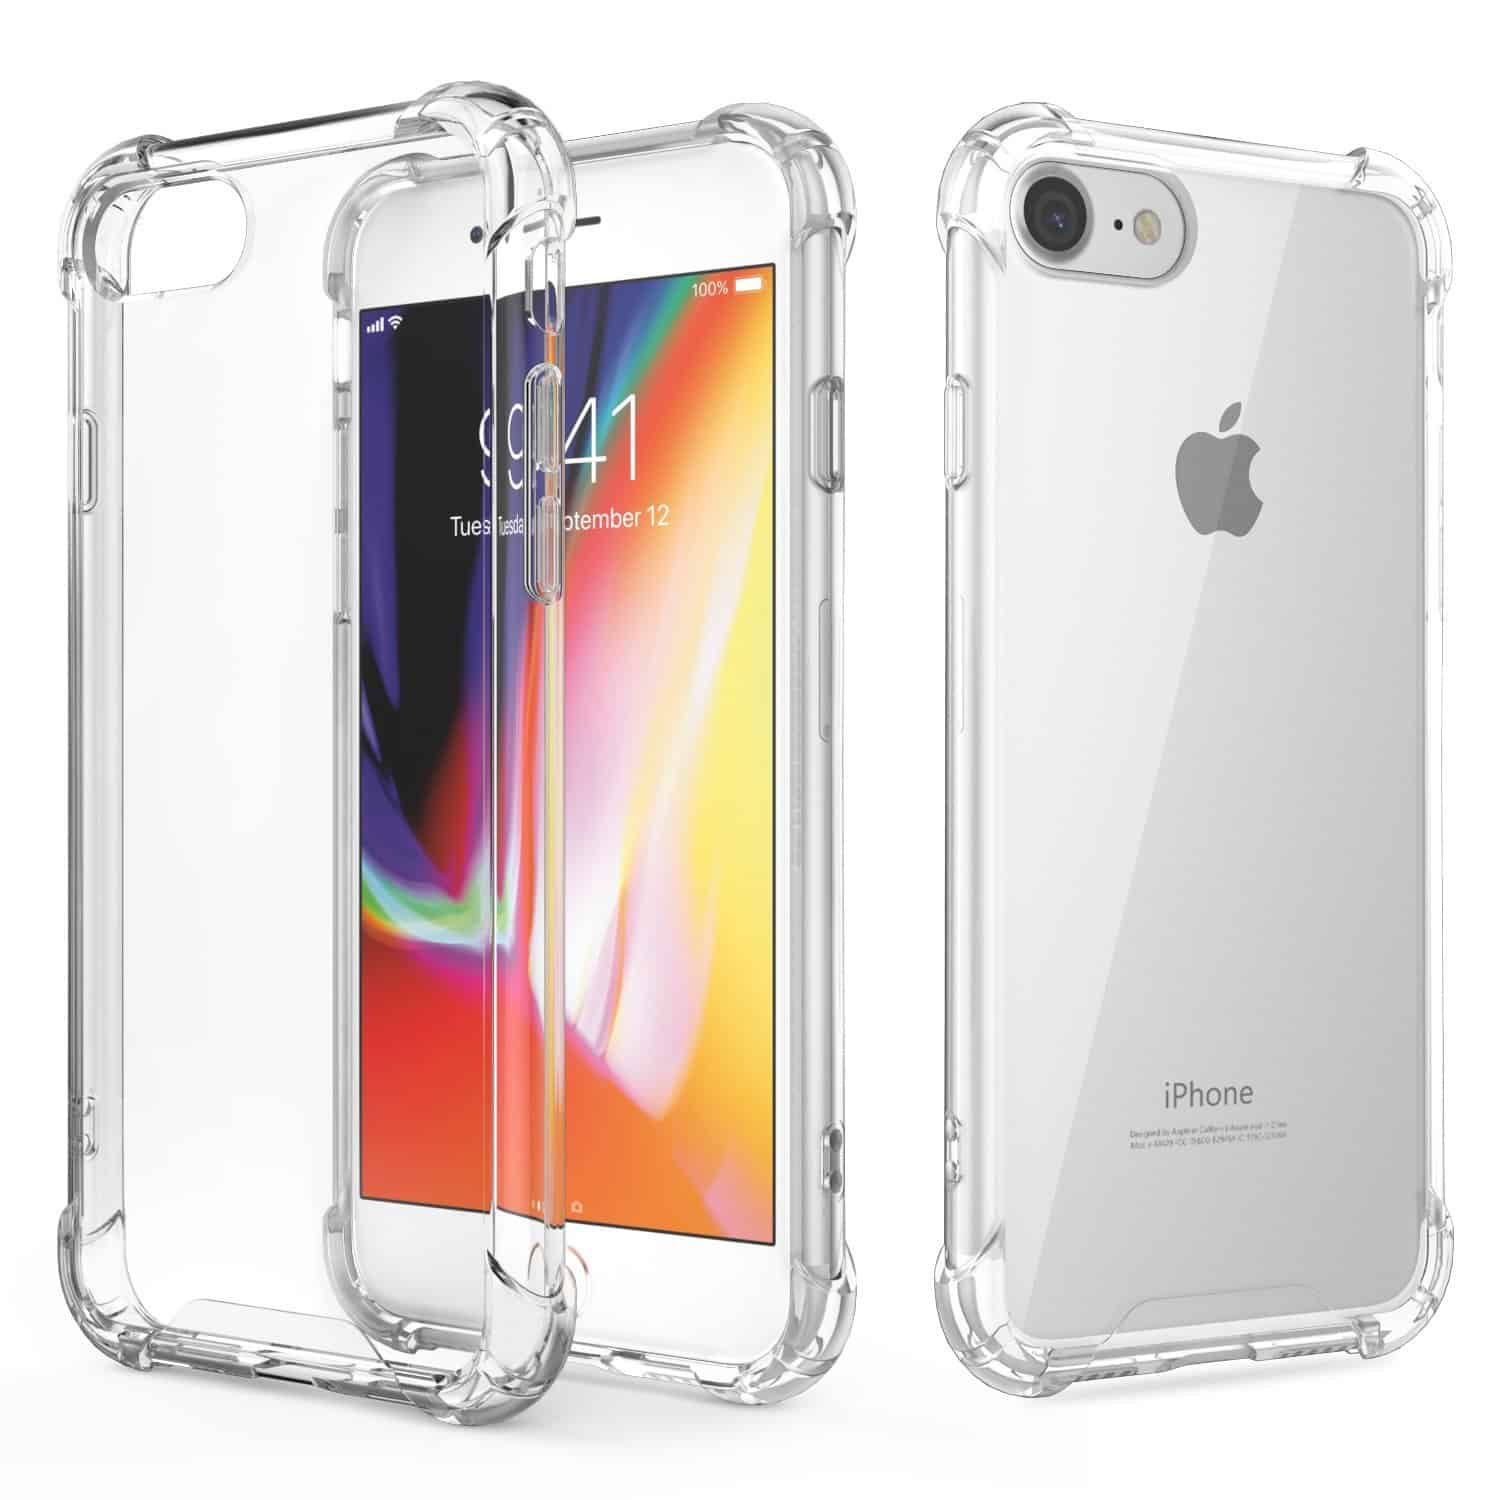 GOOSPERY Super Protect Clear Case for iPhone SE 2020 / iPhone 8 / 7